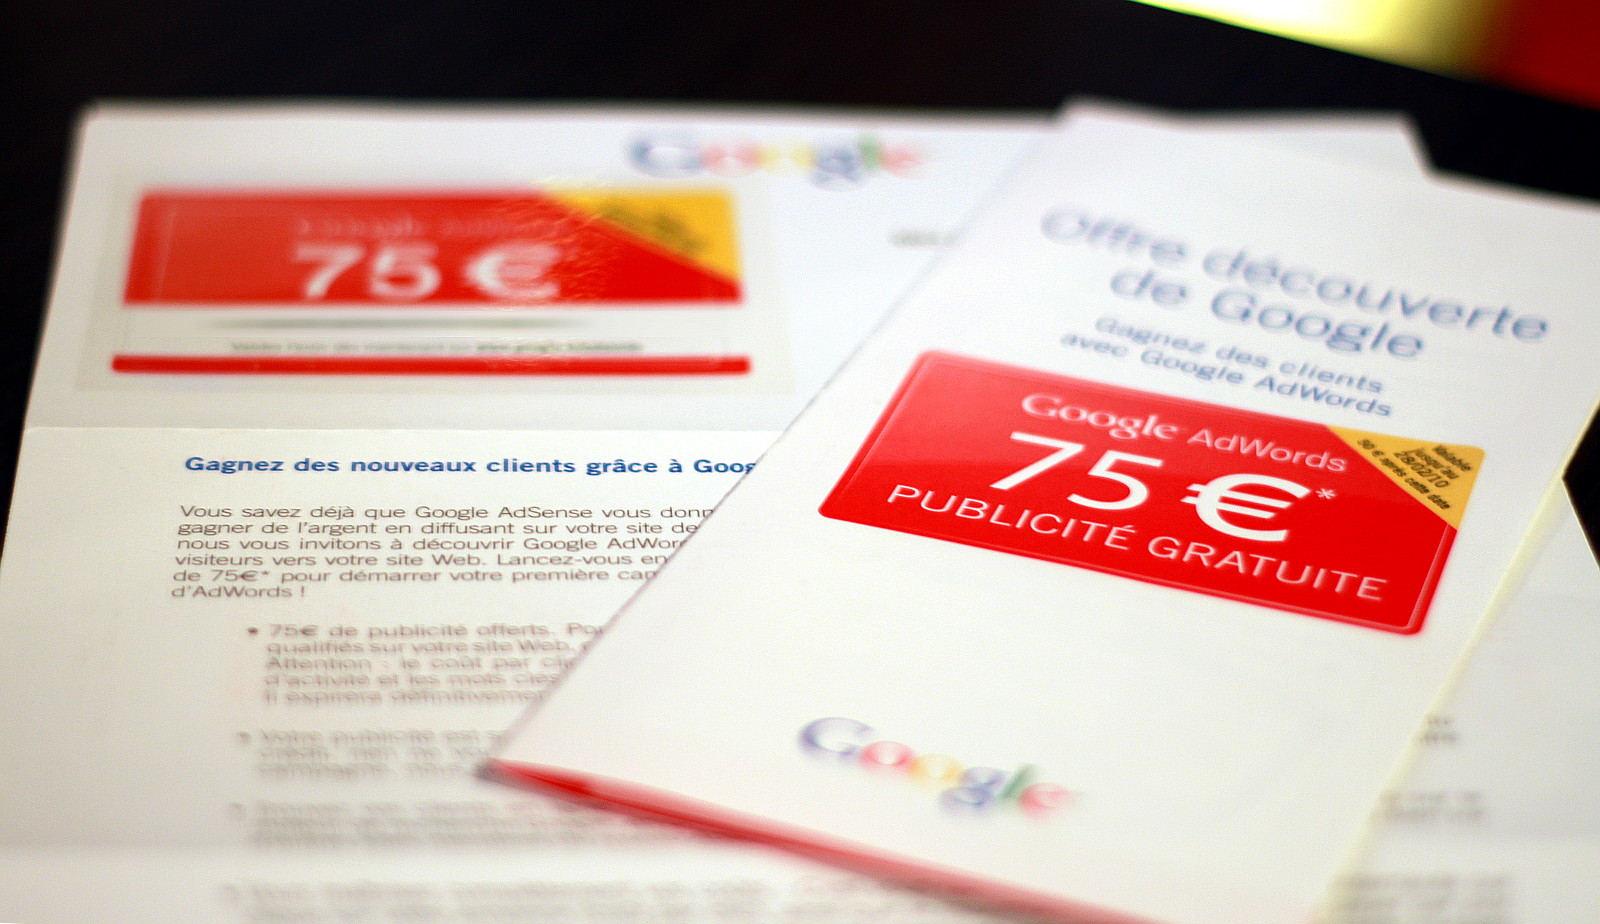 google ad-words 75 euros coupon